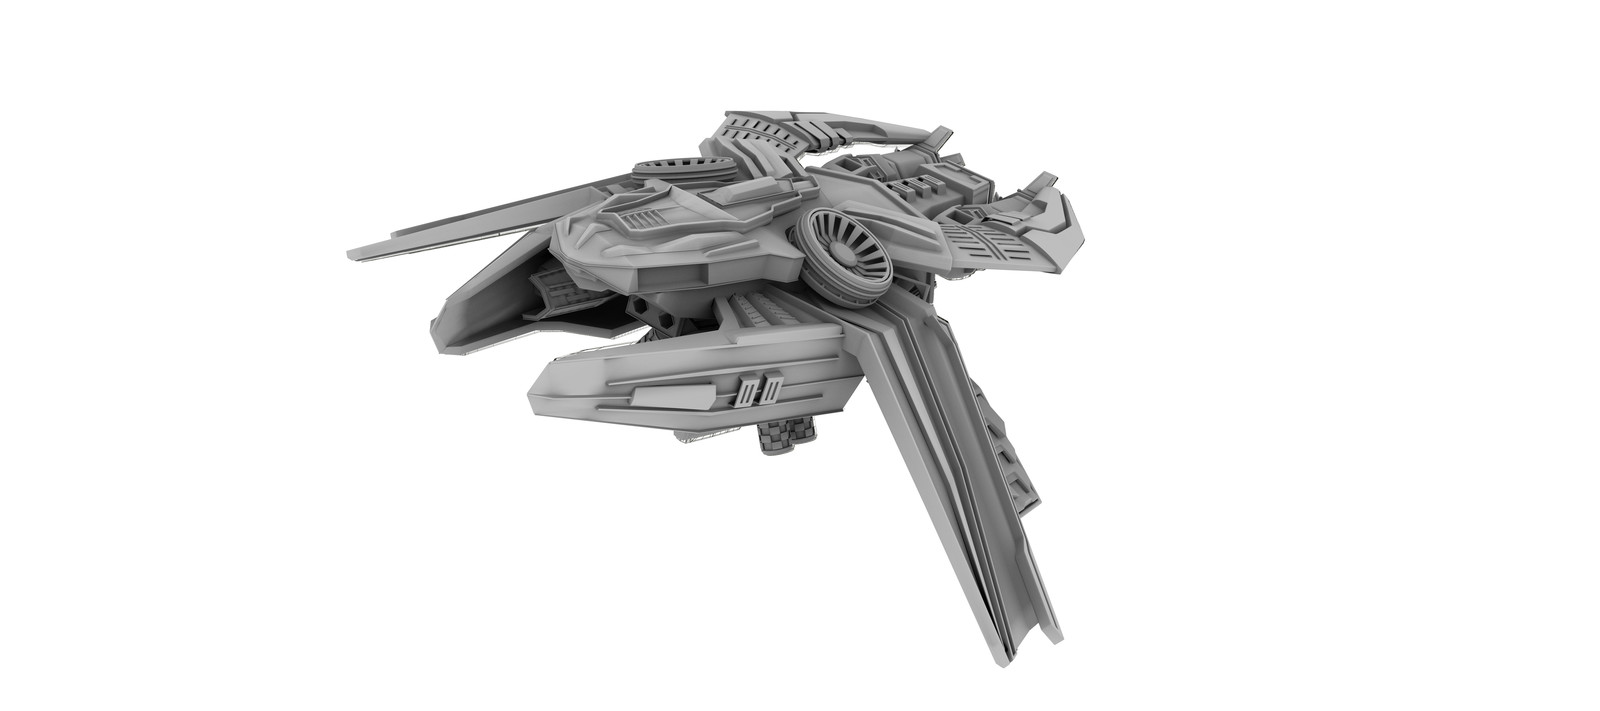 Starship - Ambient Occlusion